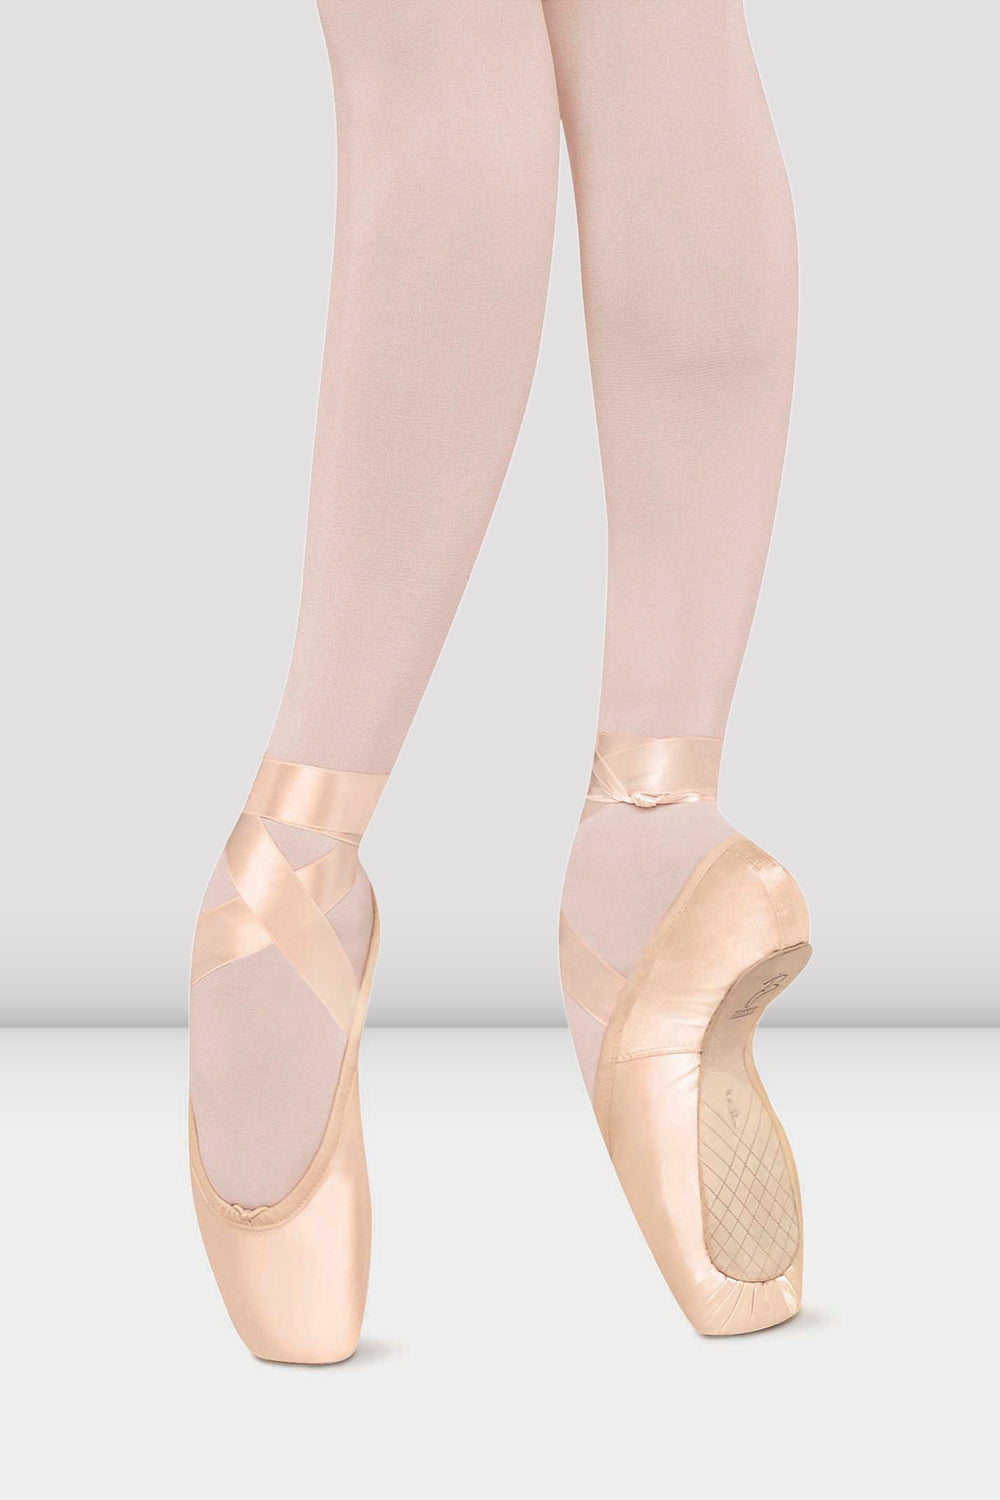 Jetstream Pointe Shoes - BLOCH US